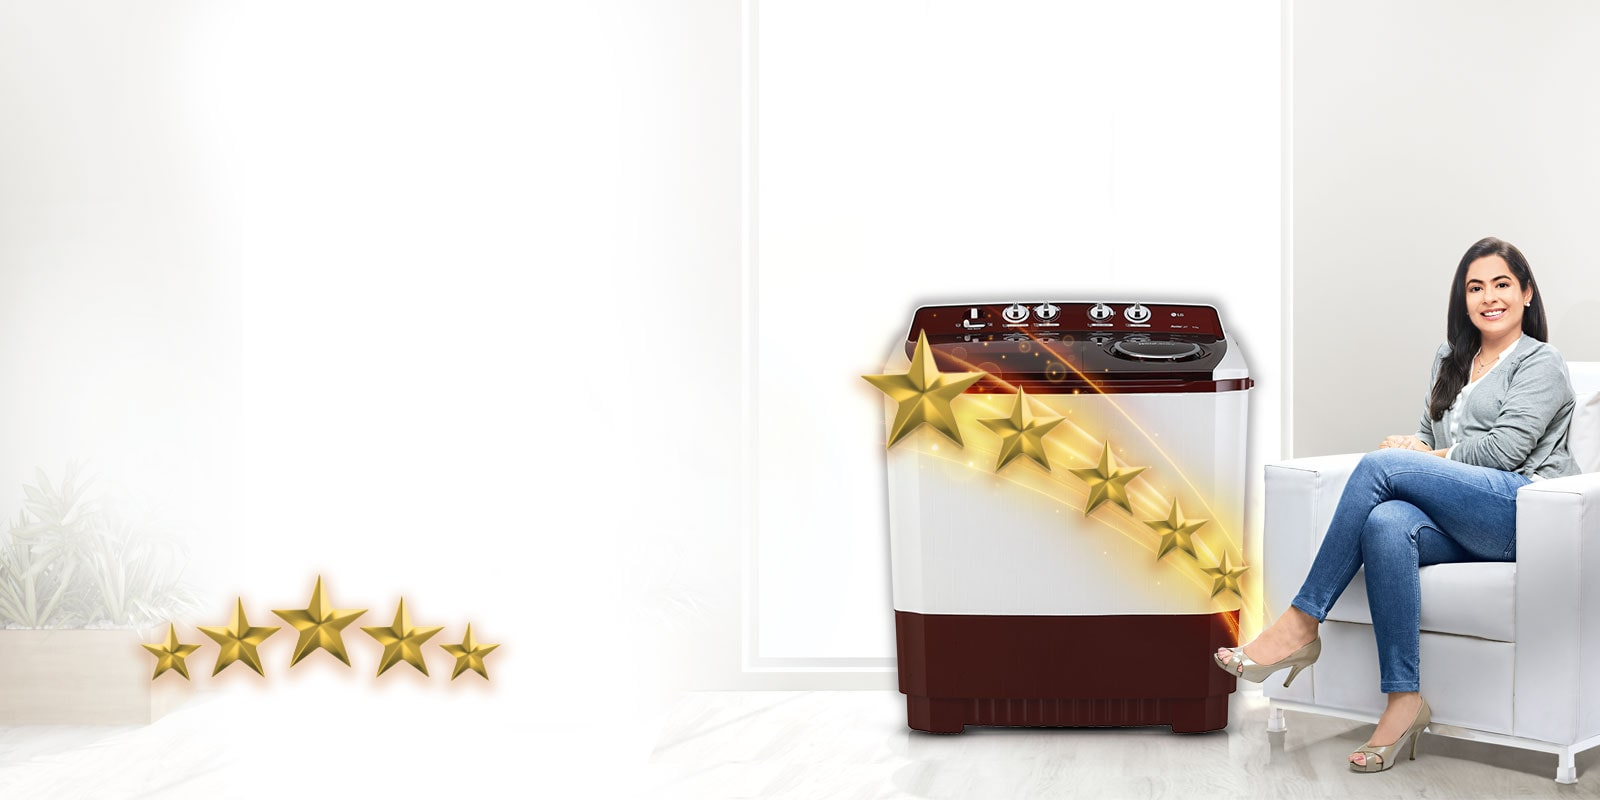 LG 5 Star Semi Automatic Washing Machine